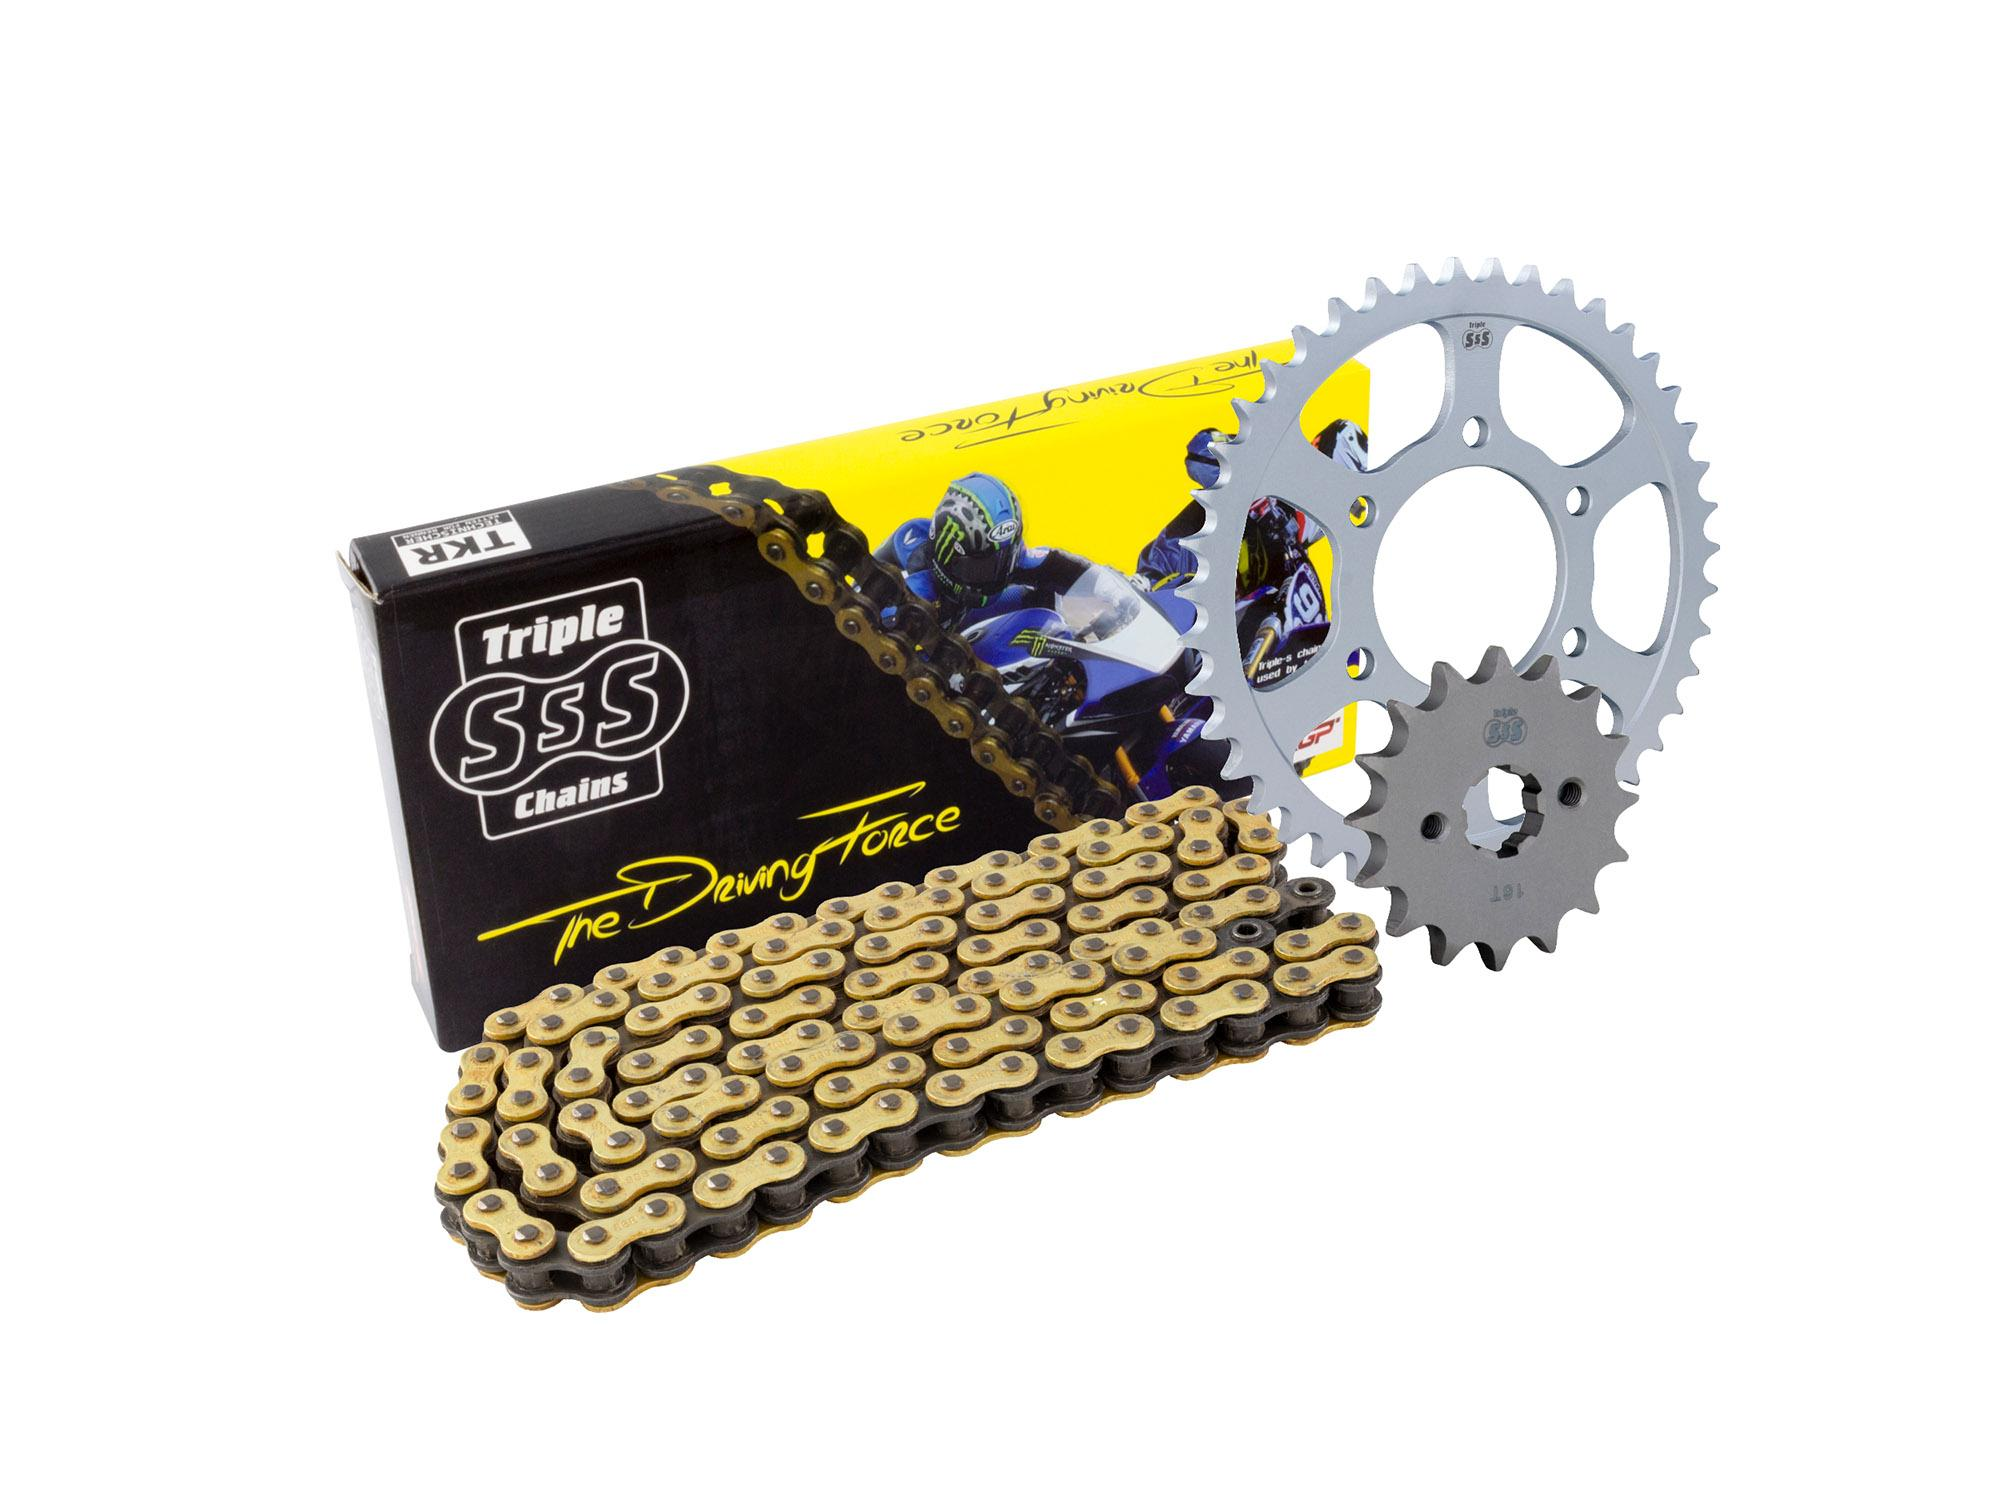 Kawasaki ZX-10R C1-C2 Ninja 04-05 Chain & Sprocket Kit: 17T Front, 39T Rear, HD O-Ring Gold Chain 525H 110Link